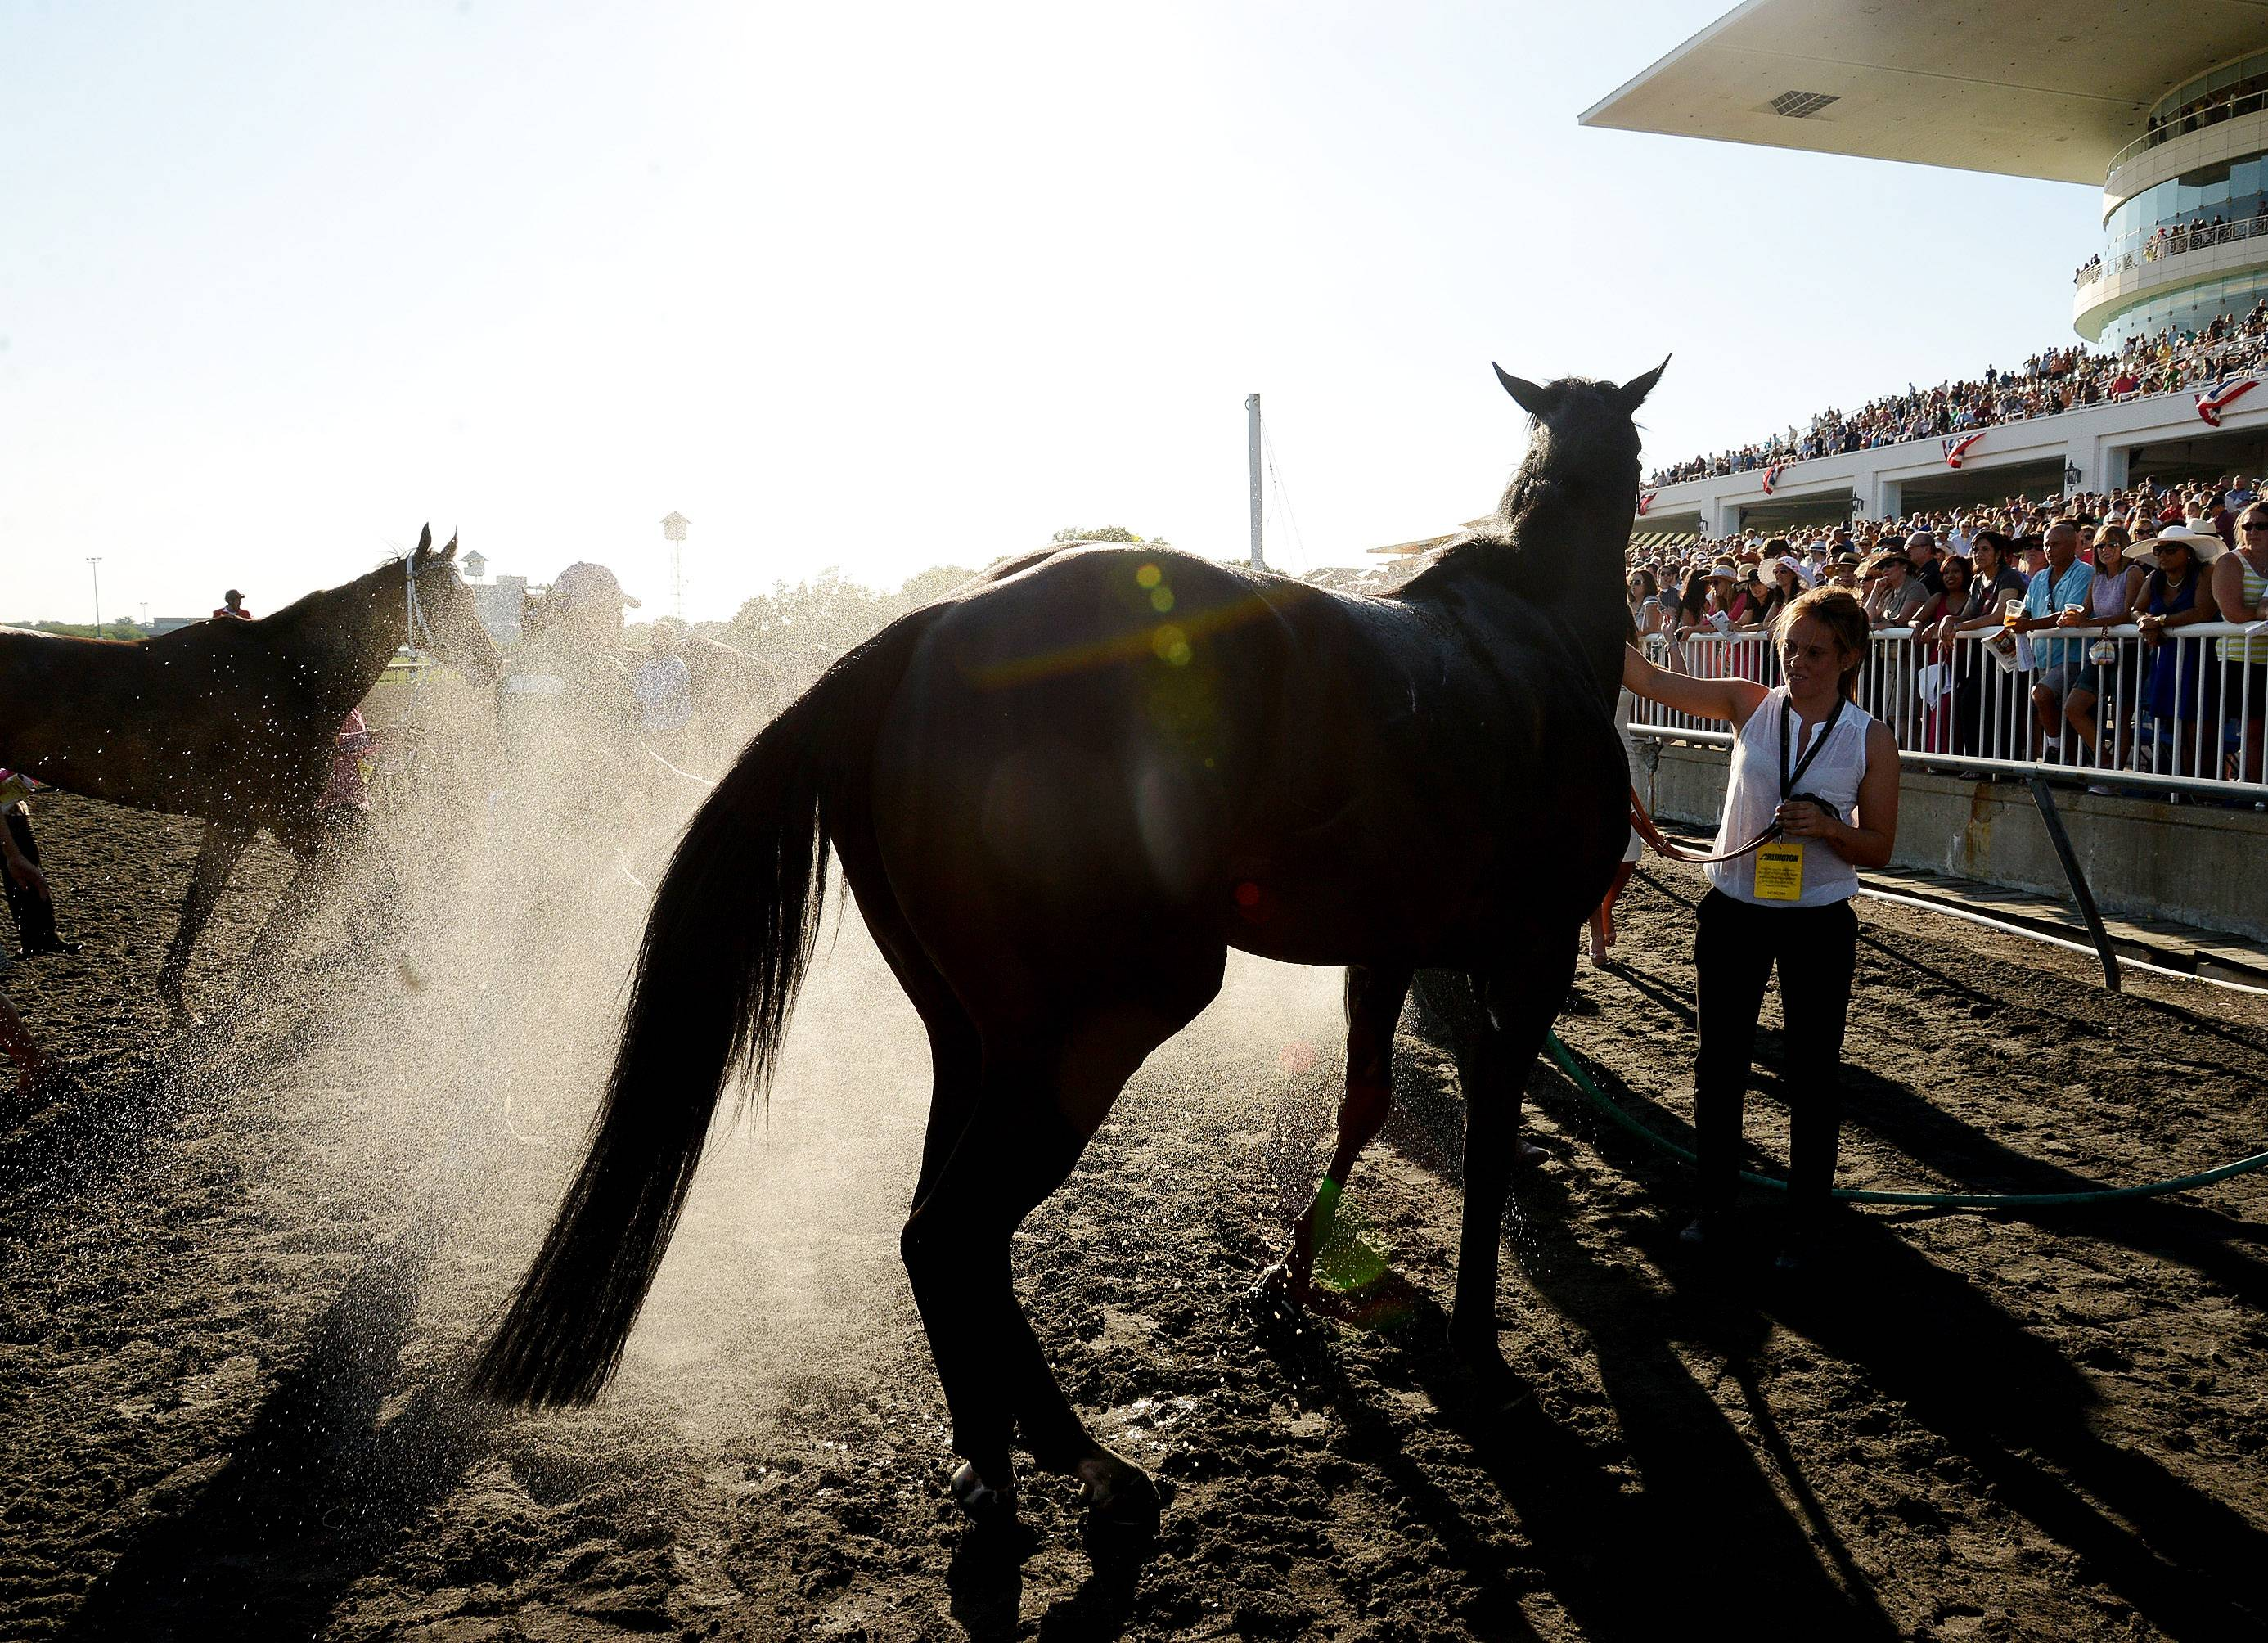 A horse gets hosed down after the Arlington Million during the Arlington International Festival of Racing at Arlington International Racecourse.